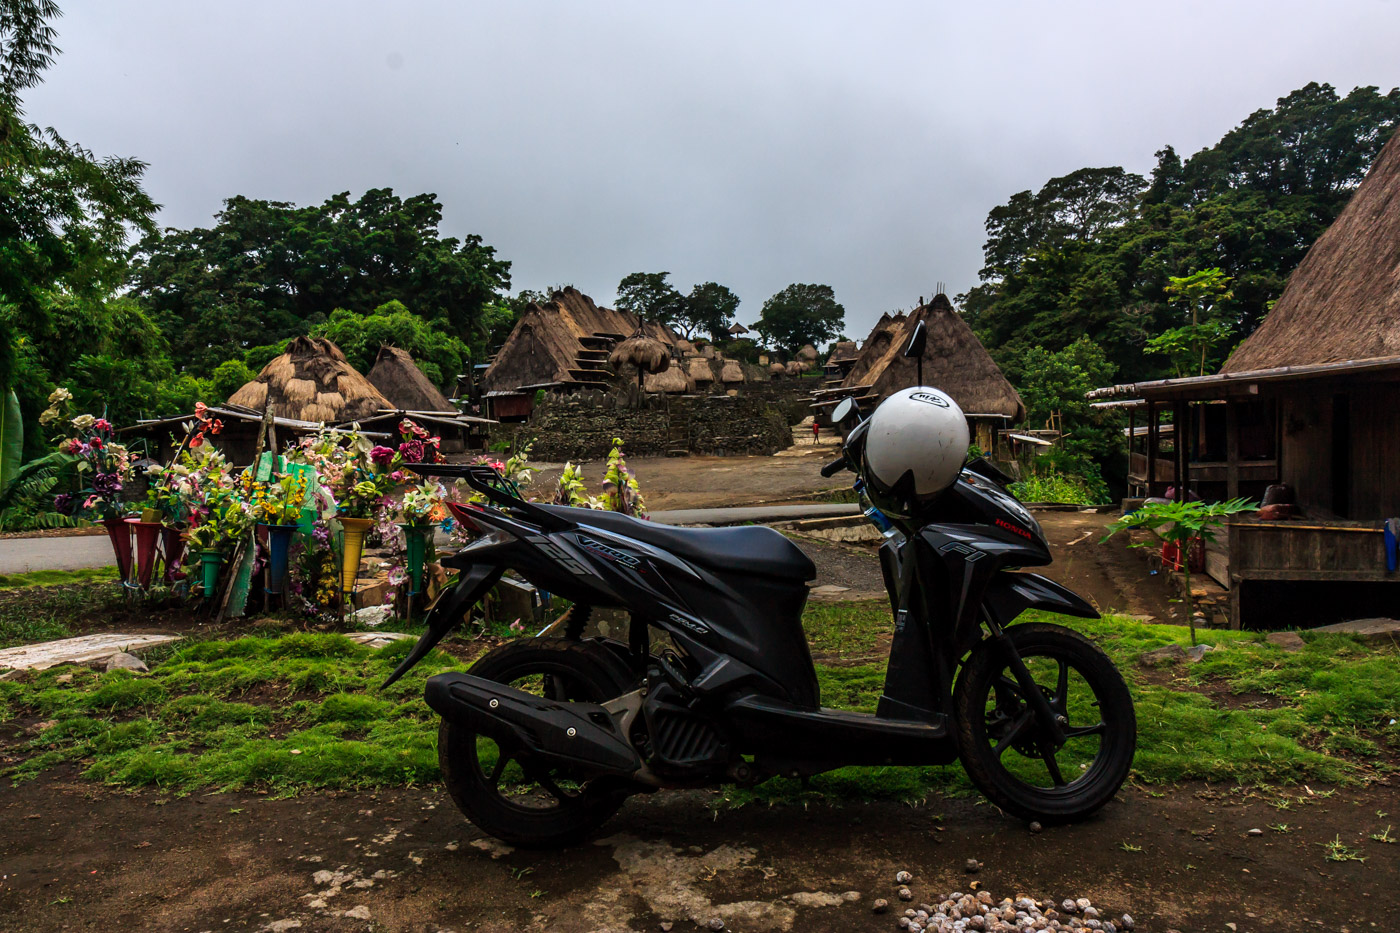 Riding to remote villages.